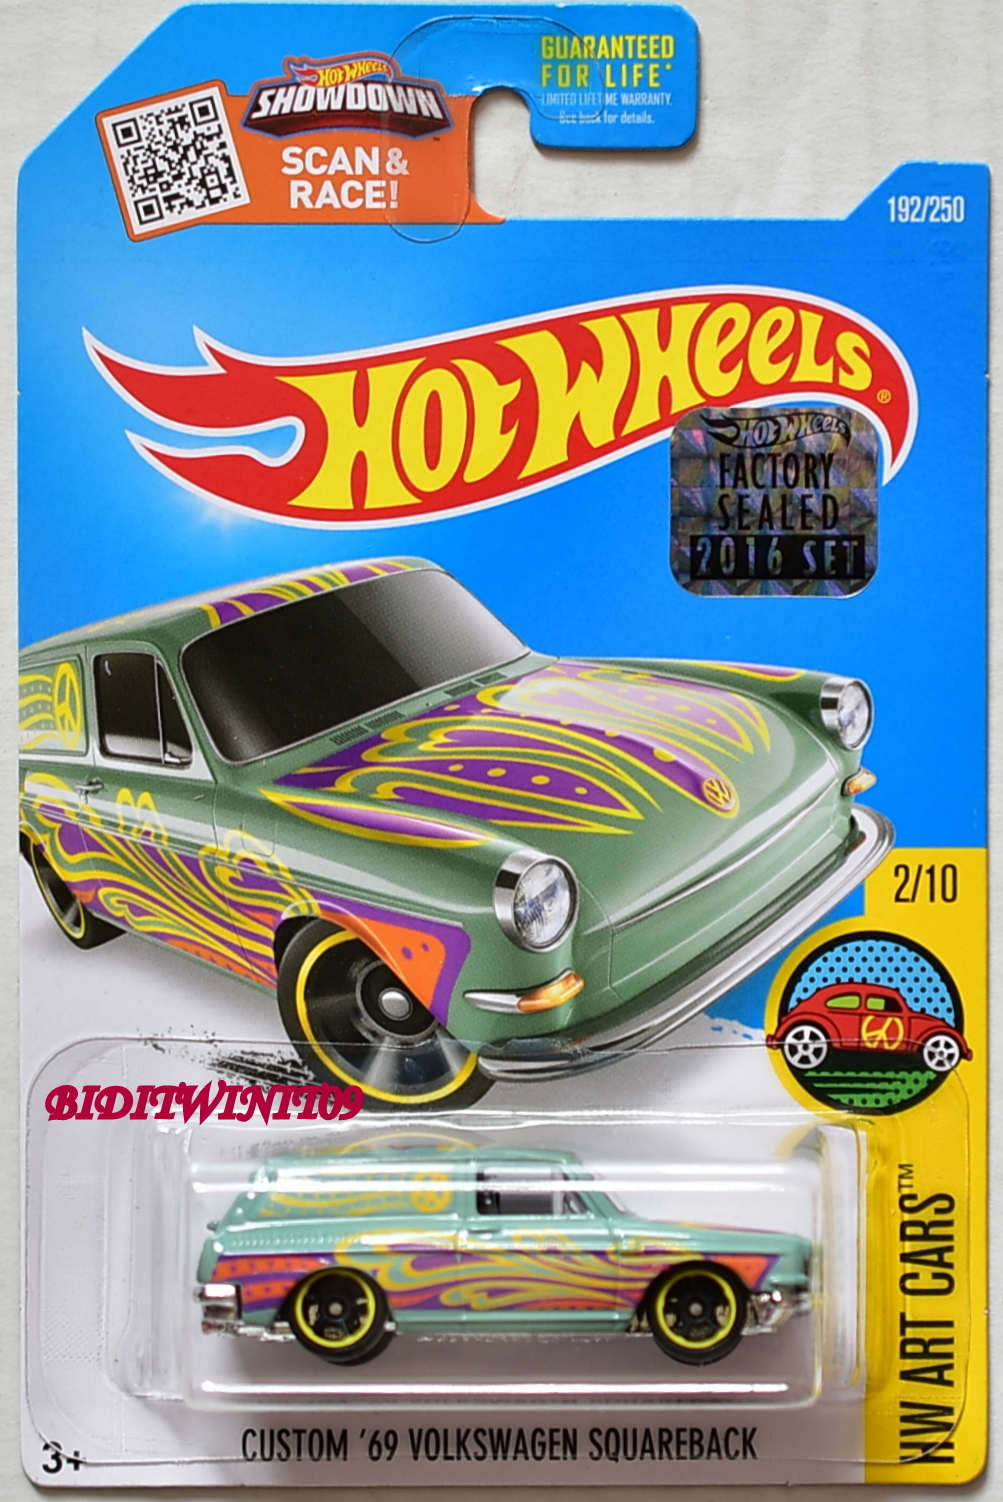 HOT WHEELS 2016 HW ART CARS CUSTOM '69 VOLKSWAGEN SQUAREBACK FACTORY SEALED E+